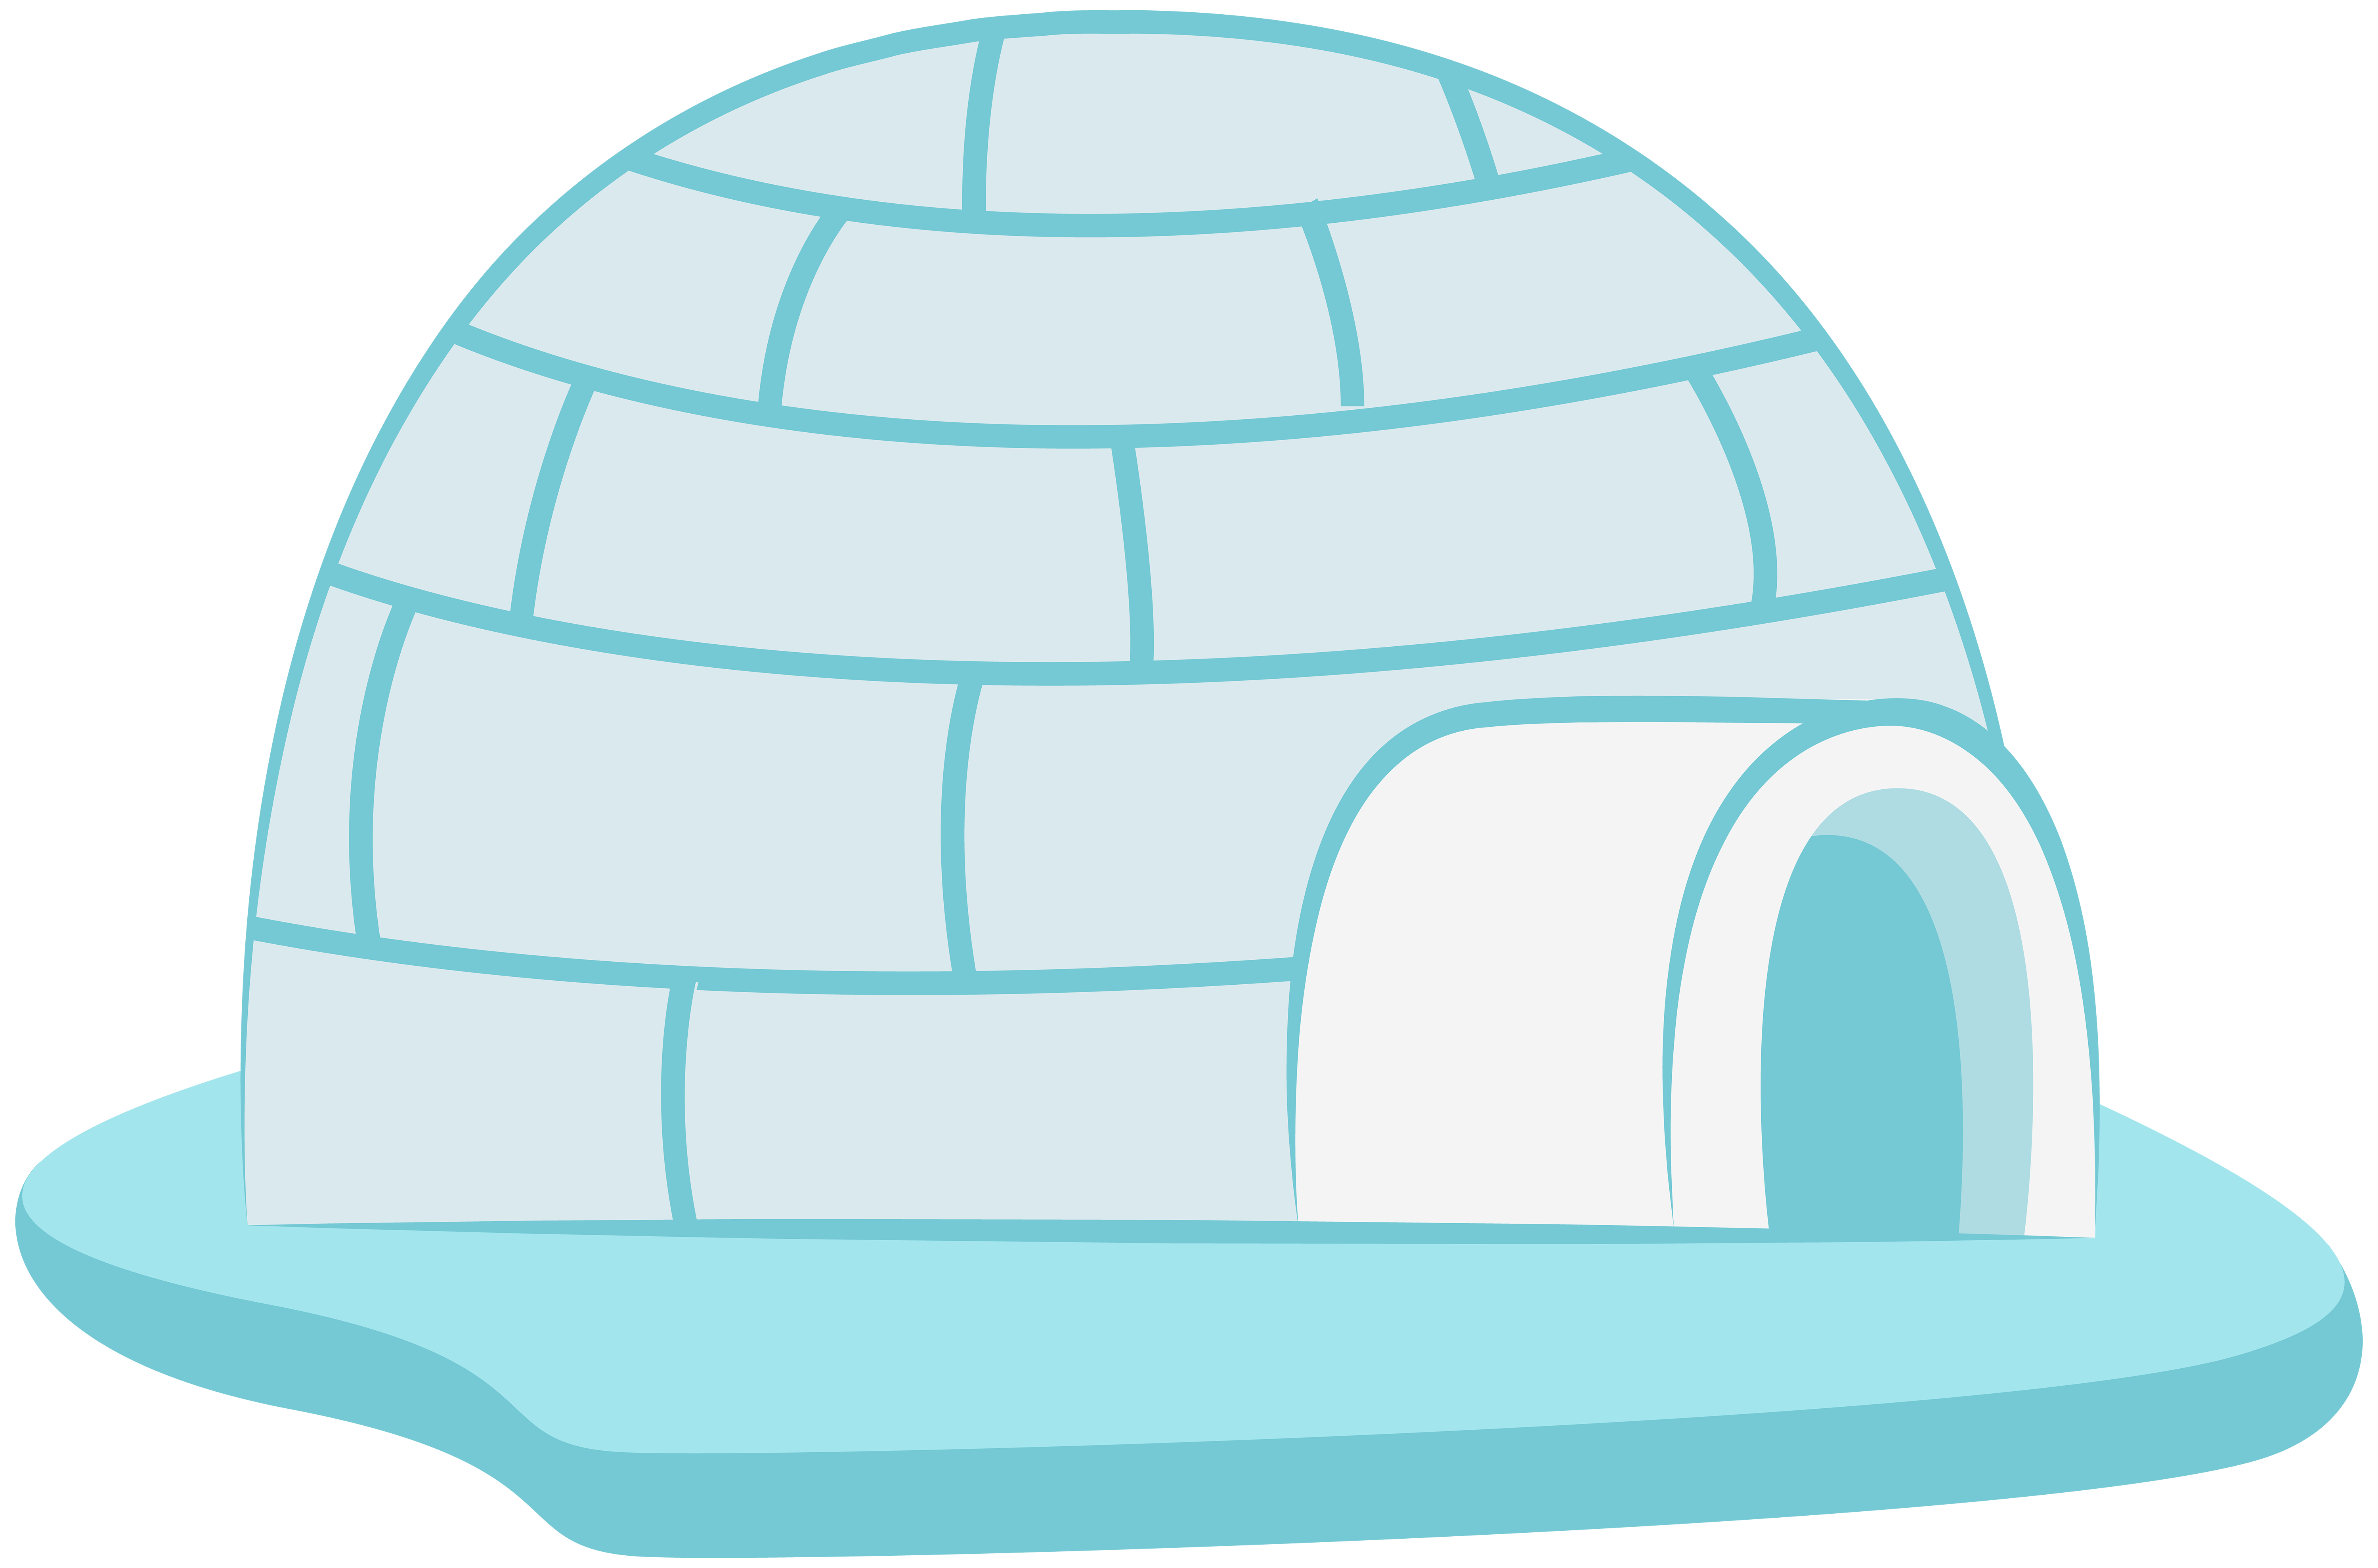 Icehouse Transparent PNG Clip Art Image | Gallery Yopriceville ... image free download